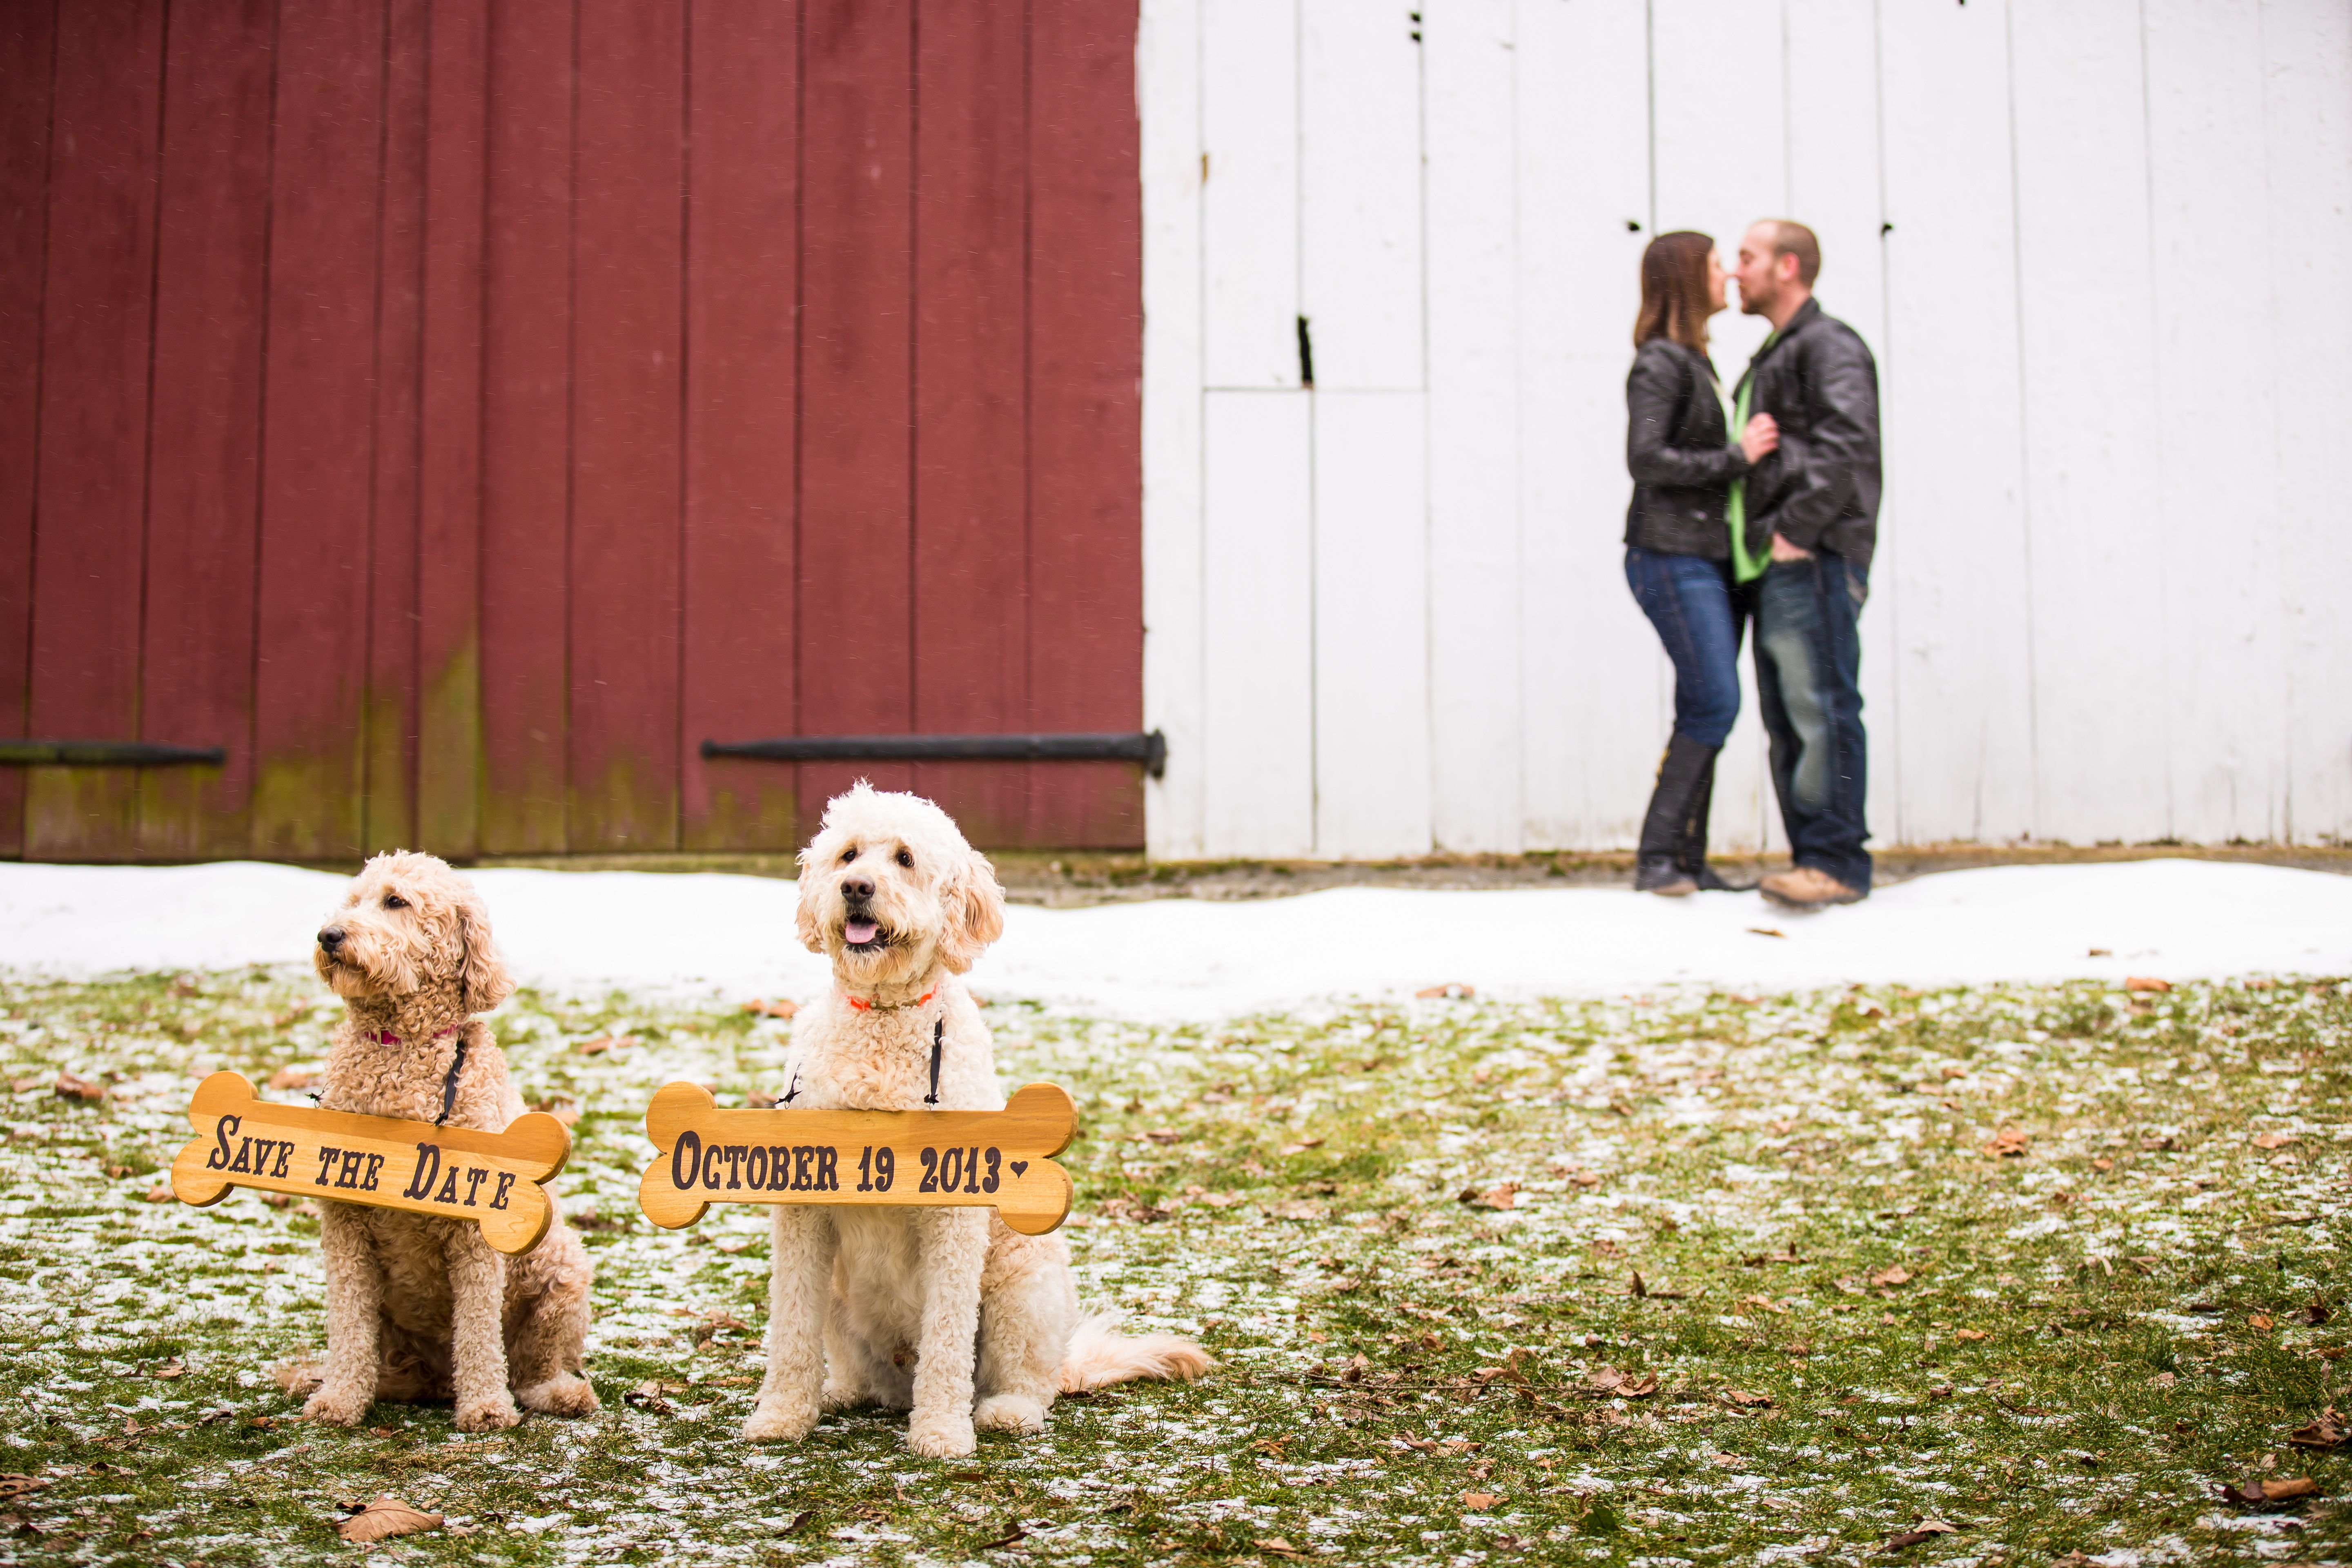 Save the Date with dogs. Photo by Lisa Rhinehart of